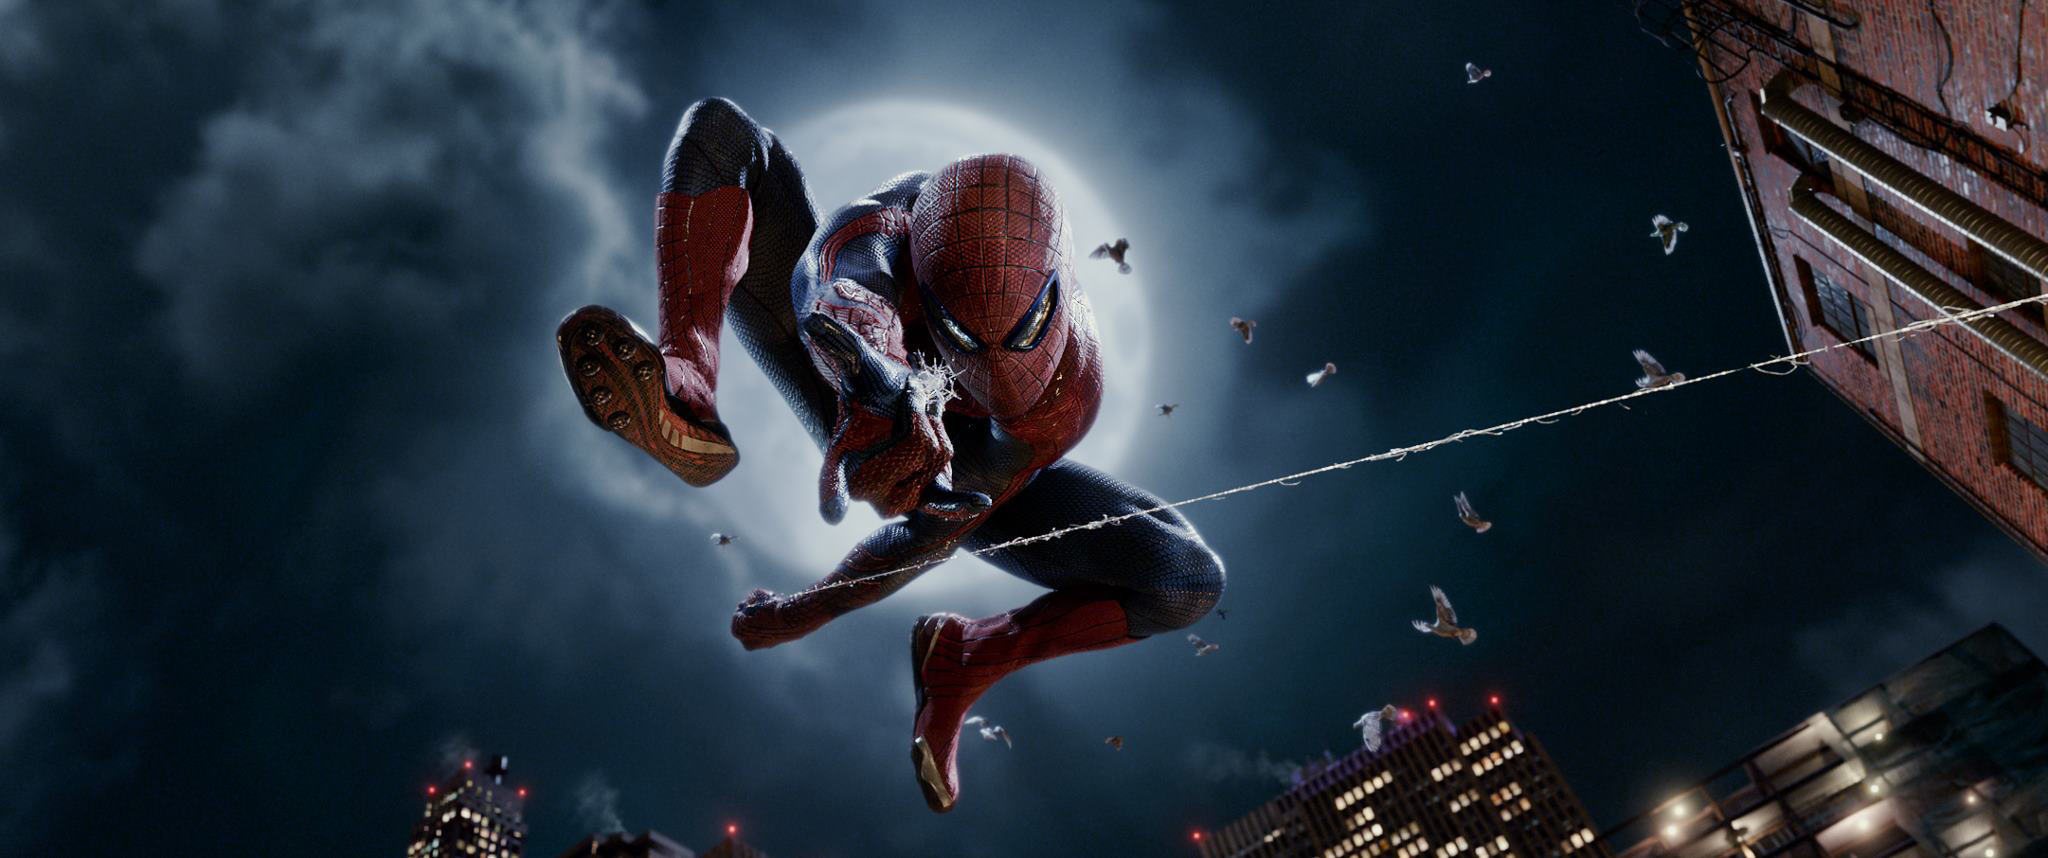 The Amazing Spider Man Wallpapers Comics Hq The Amazing Spider